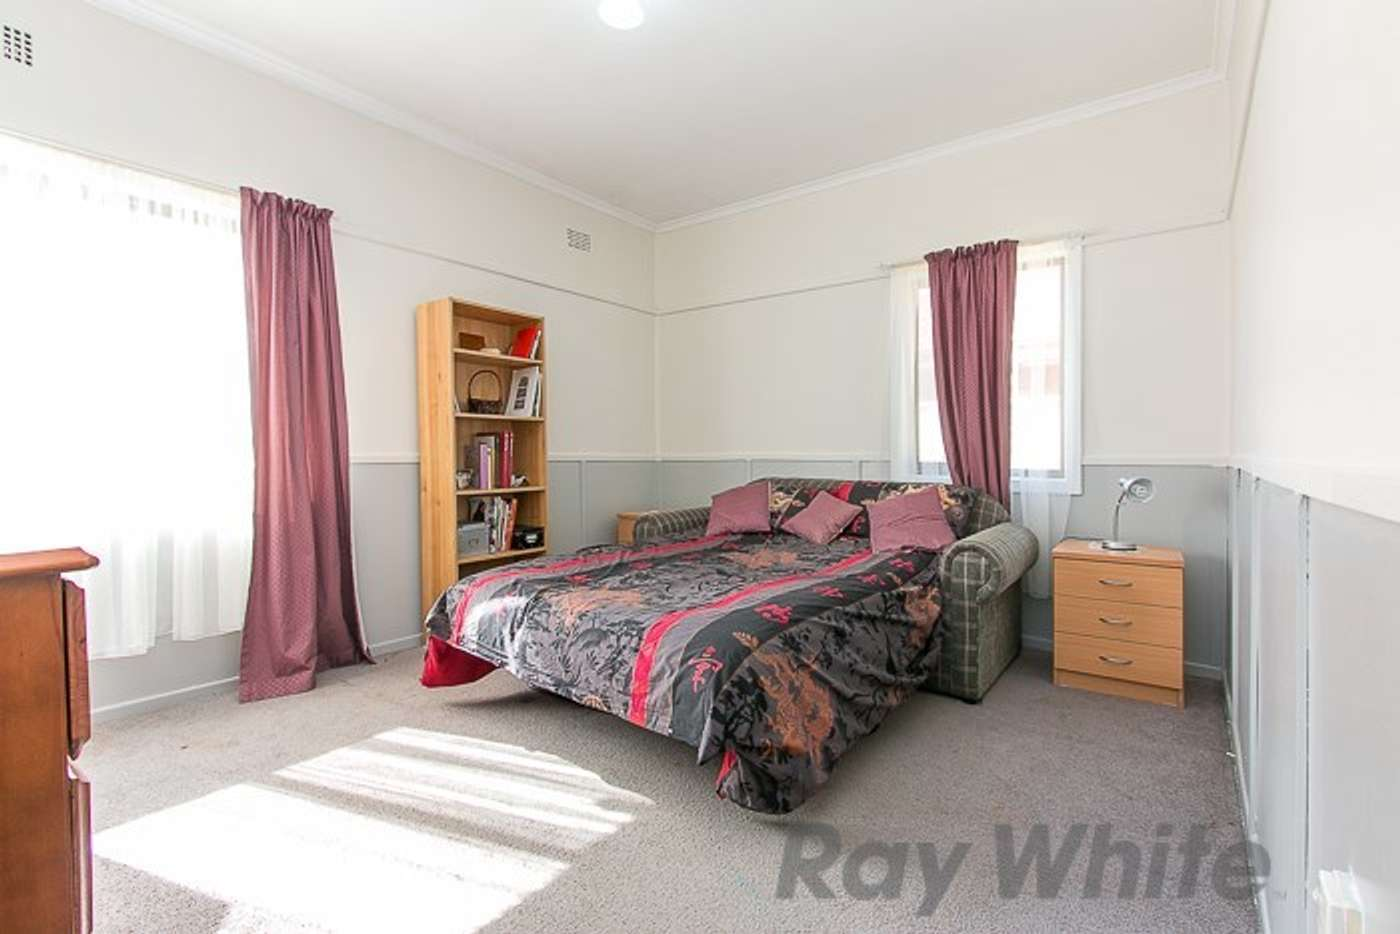 Seventh view of Homely house listing, 26 Douglas Street, Wallsend NSW 2287